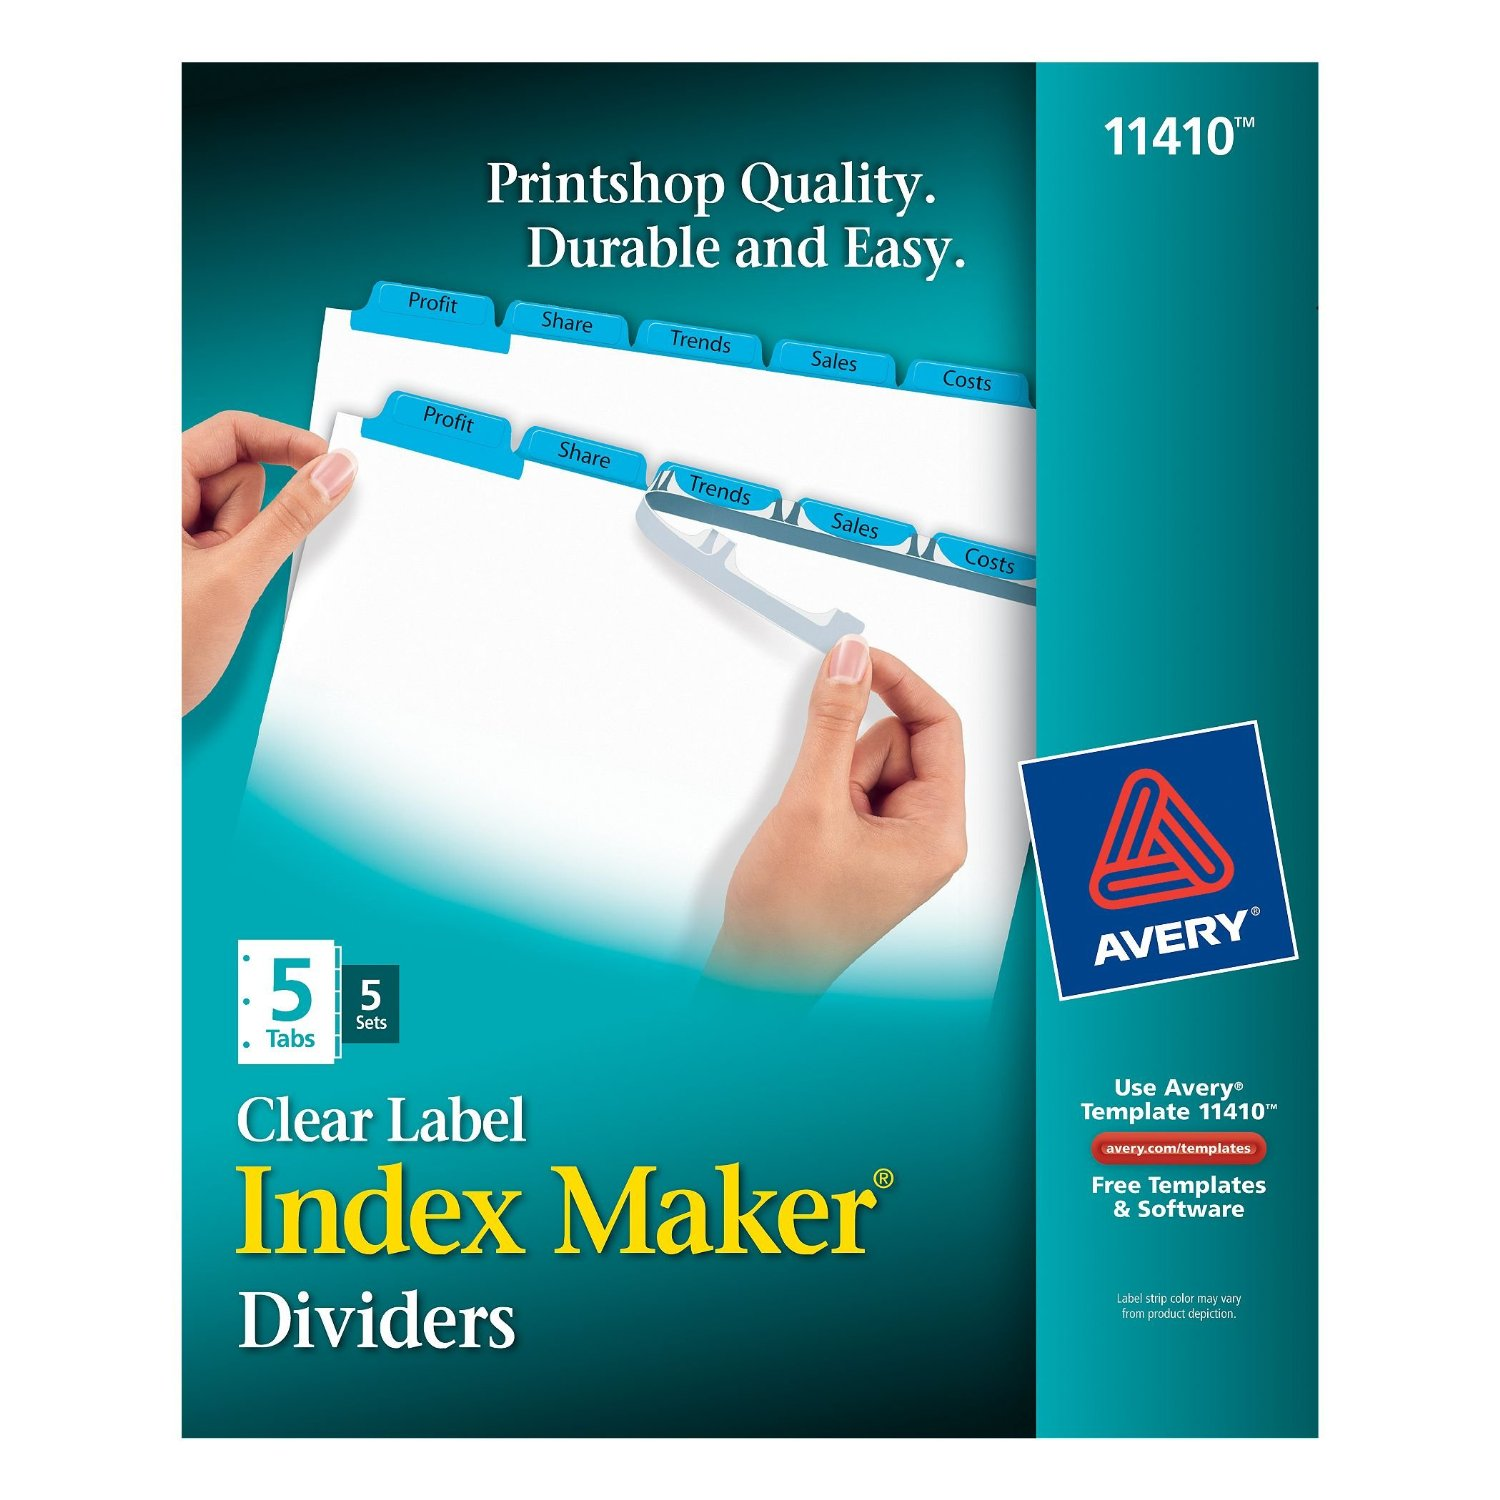 avery index maker clear label dividers easy apply label With avery index maker clear label dividers 5 tab